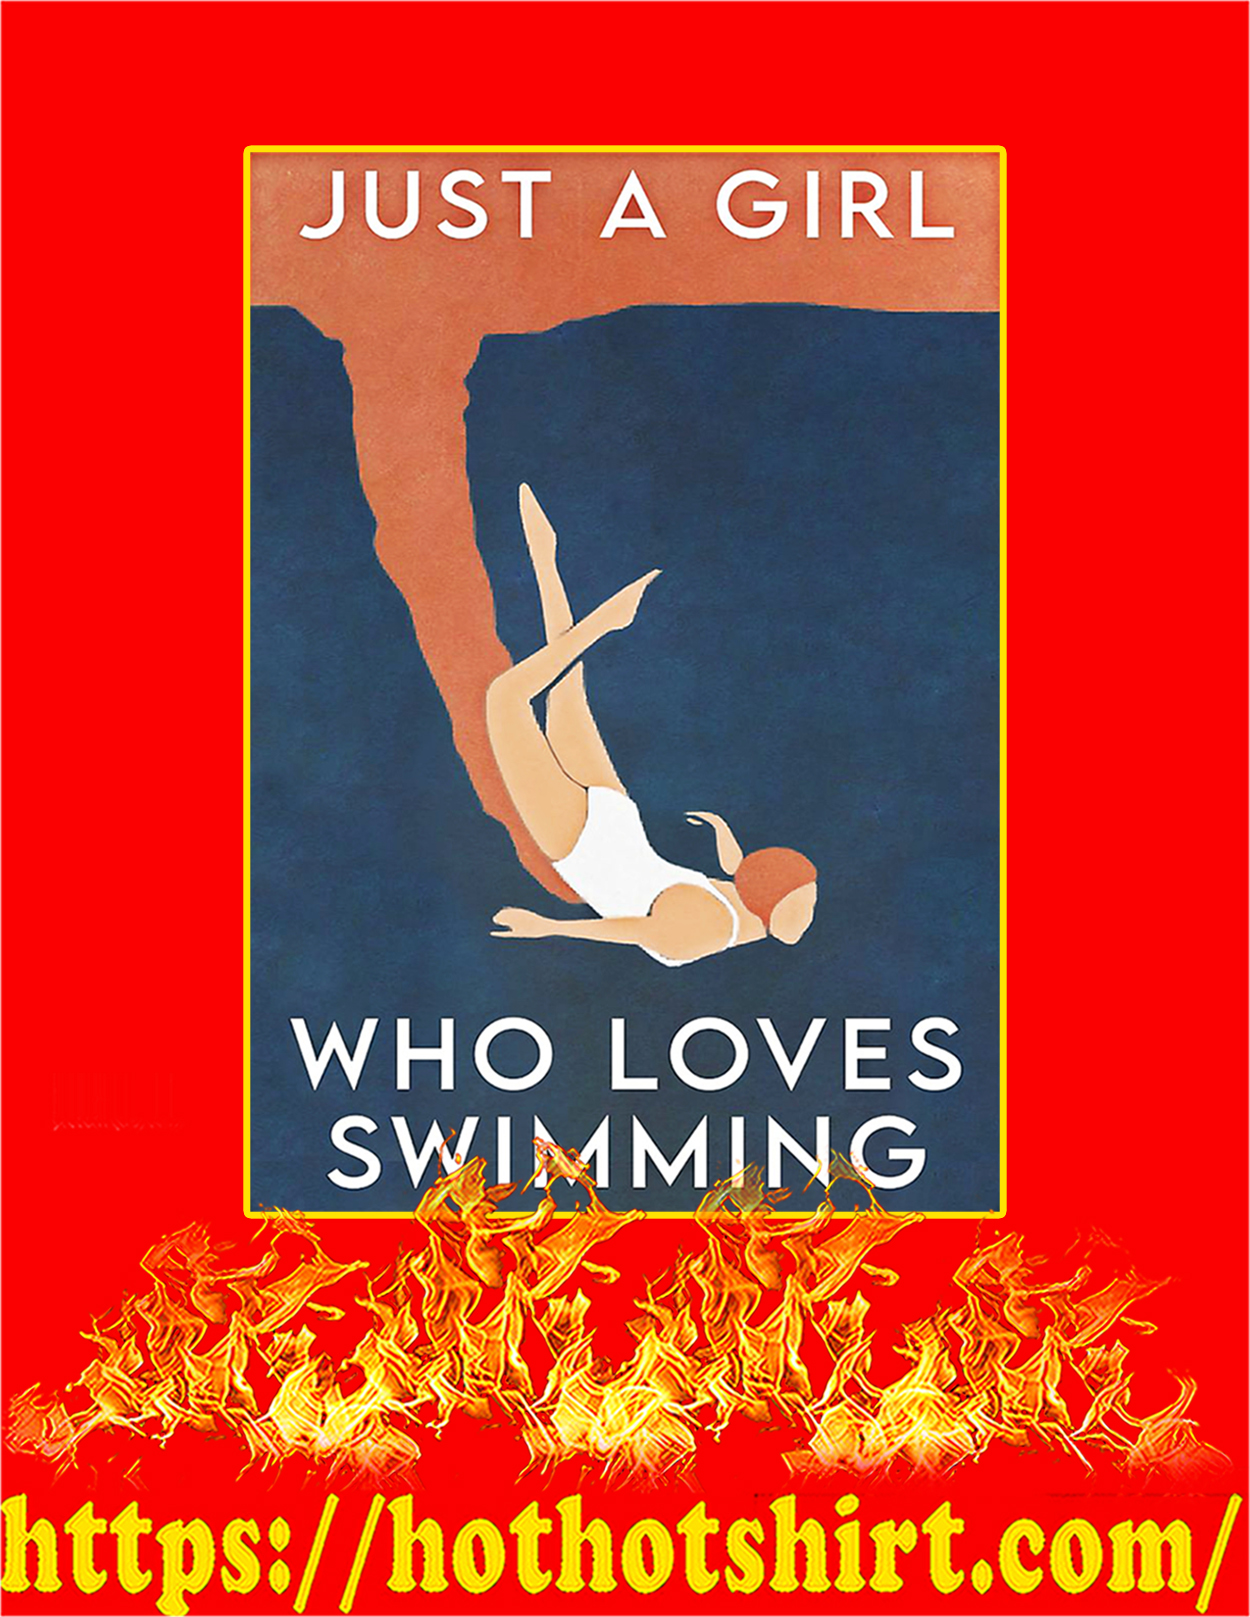 Just a girl who loves swimming poster - A3